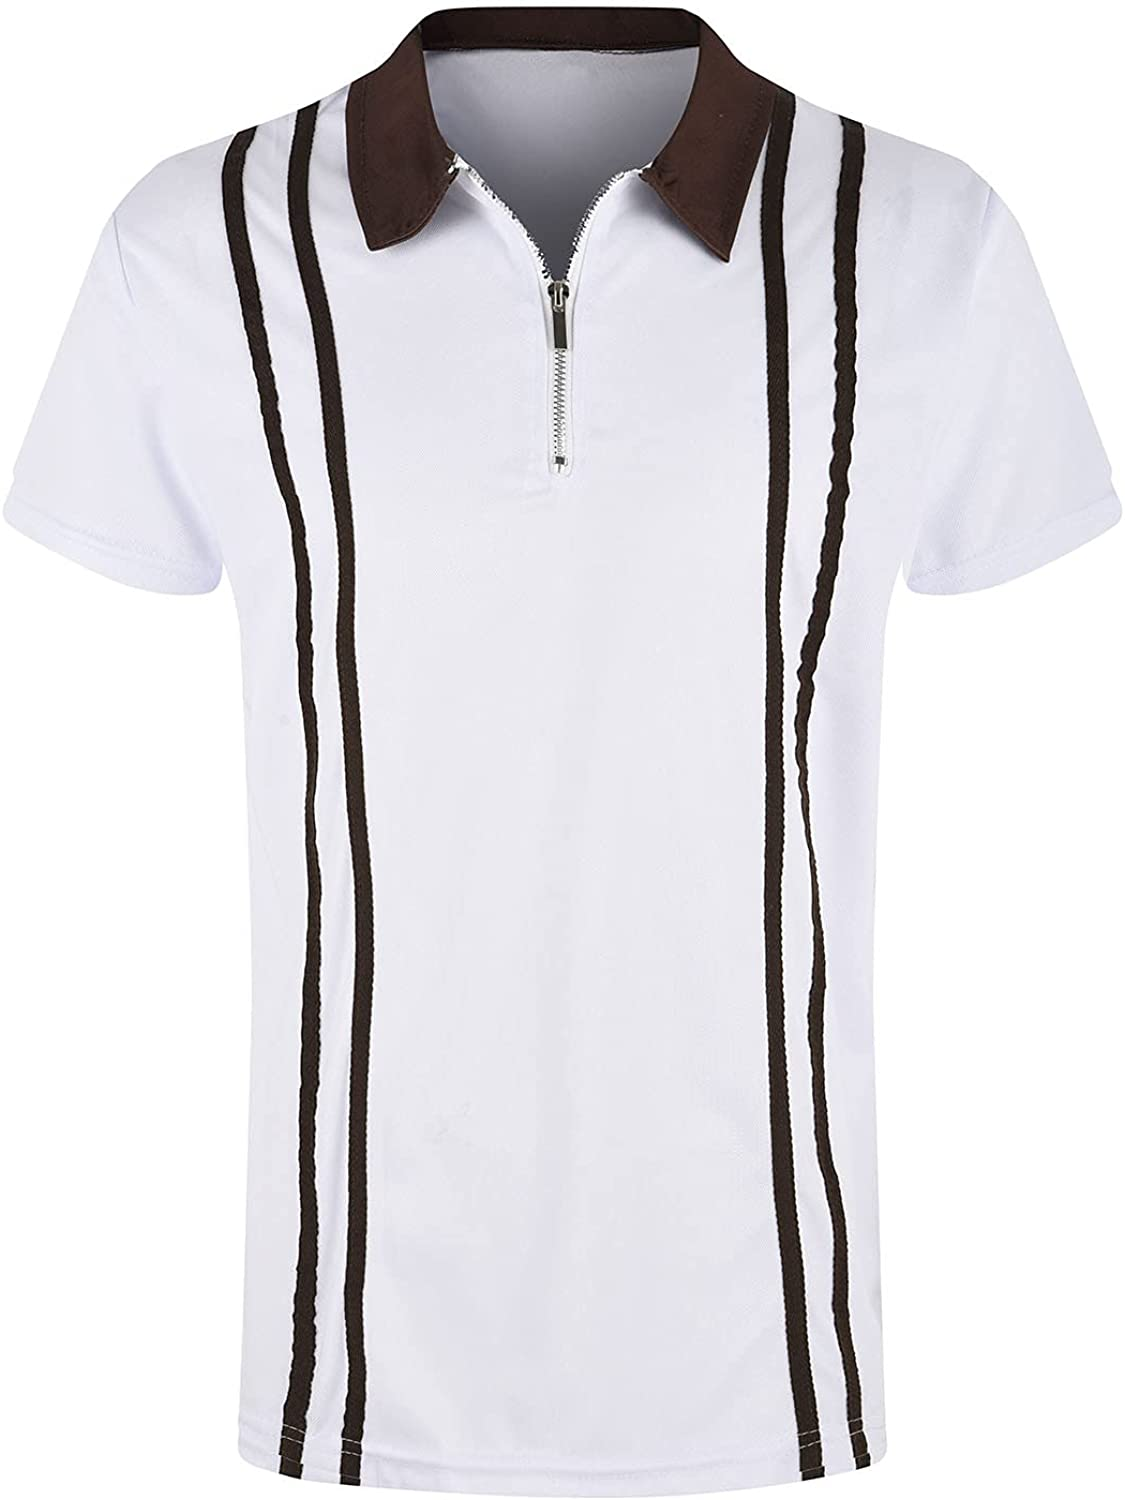 Tpingfe Men's Polo Shirt Lapel Tank Sleeve Short H Adult Chicago Mall Tee Top Ranking TOP2